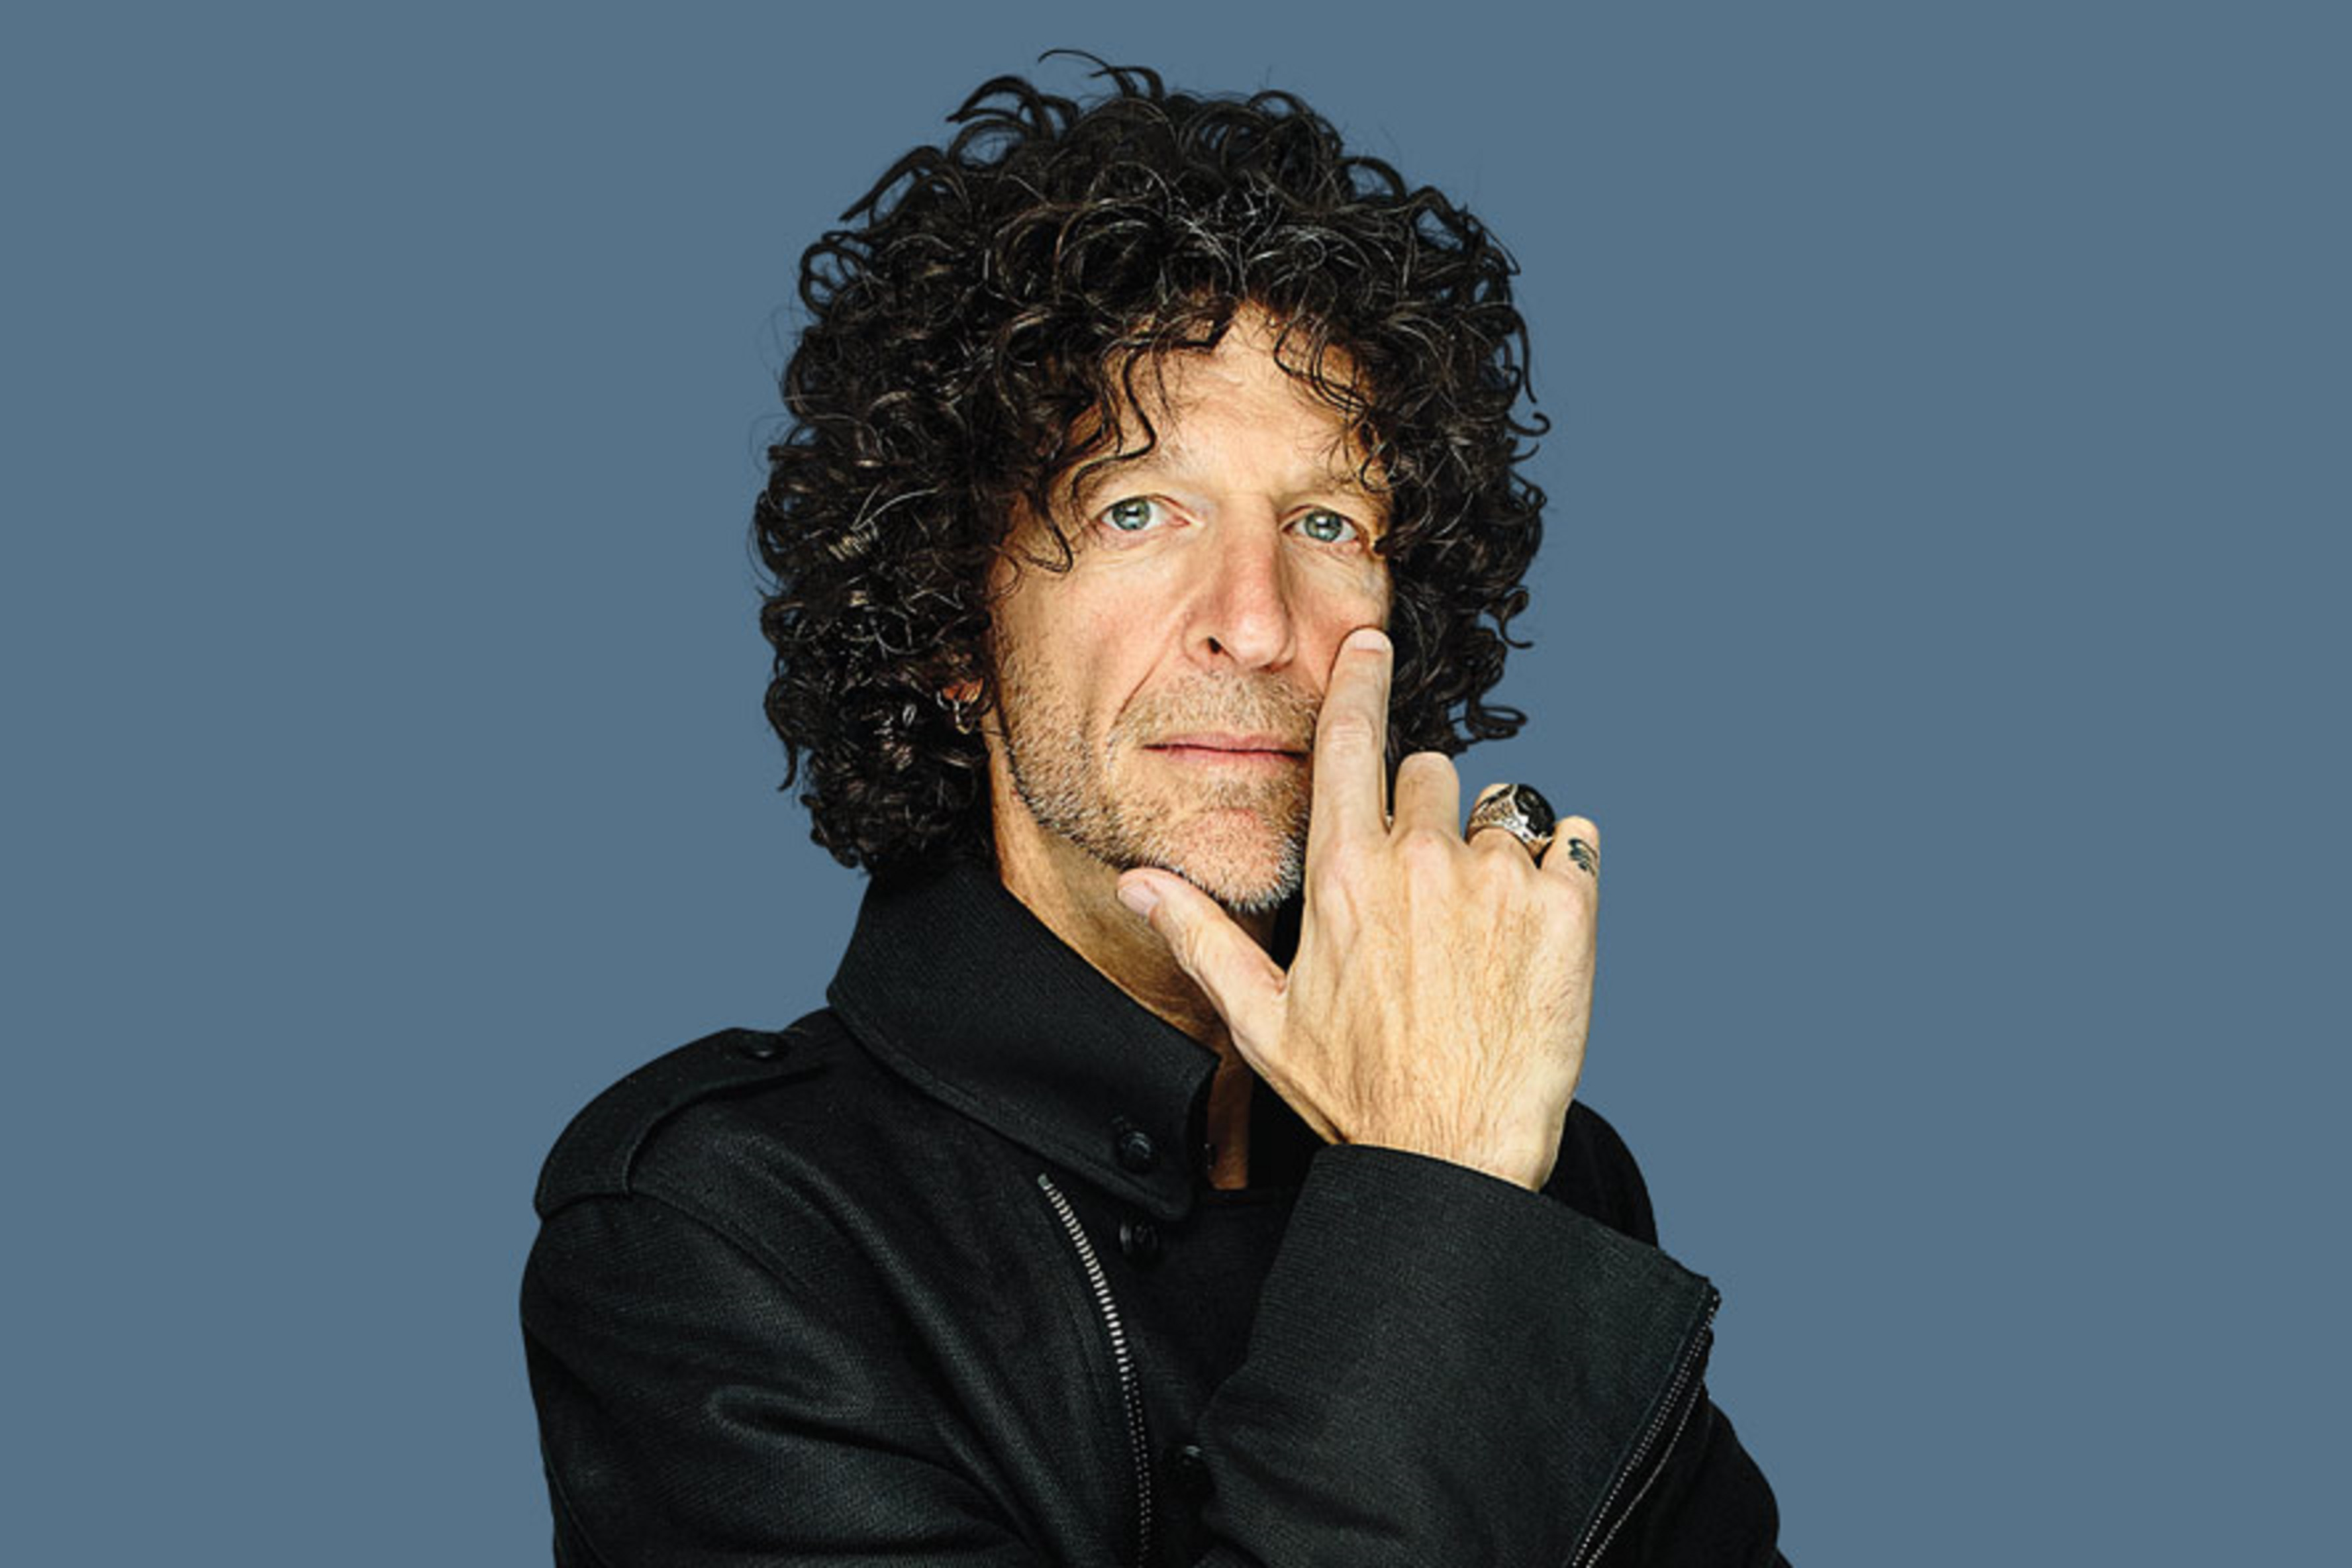 Howard Stern Announces Free SiriuxXM Premier Streaming Service through May 15